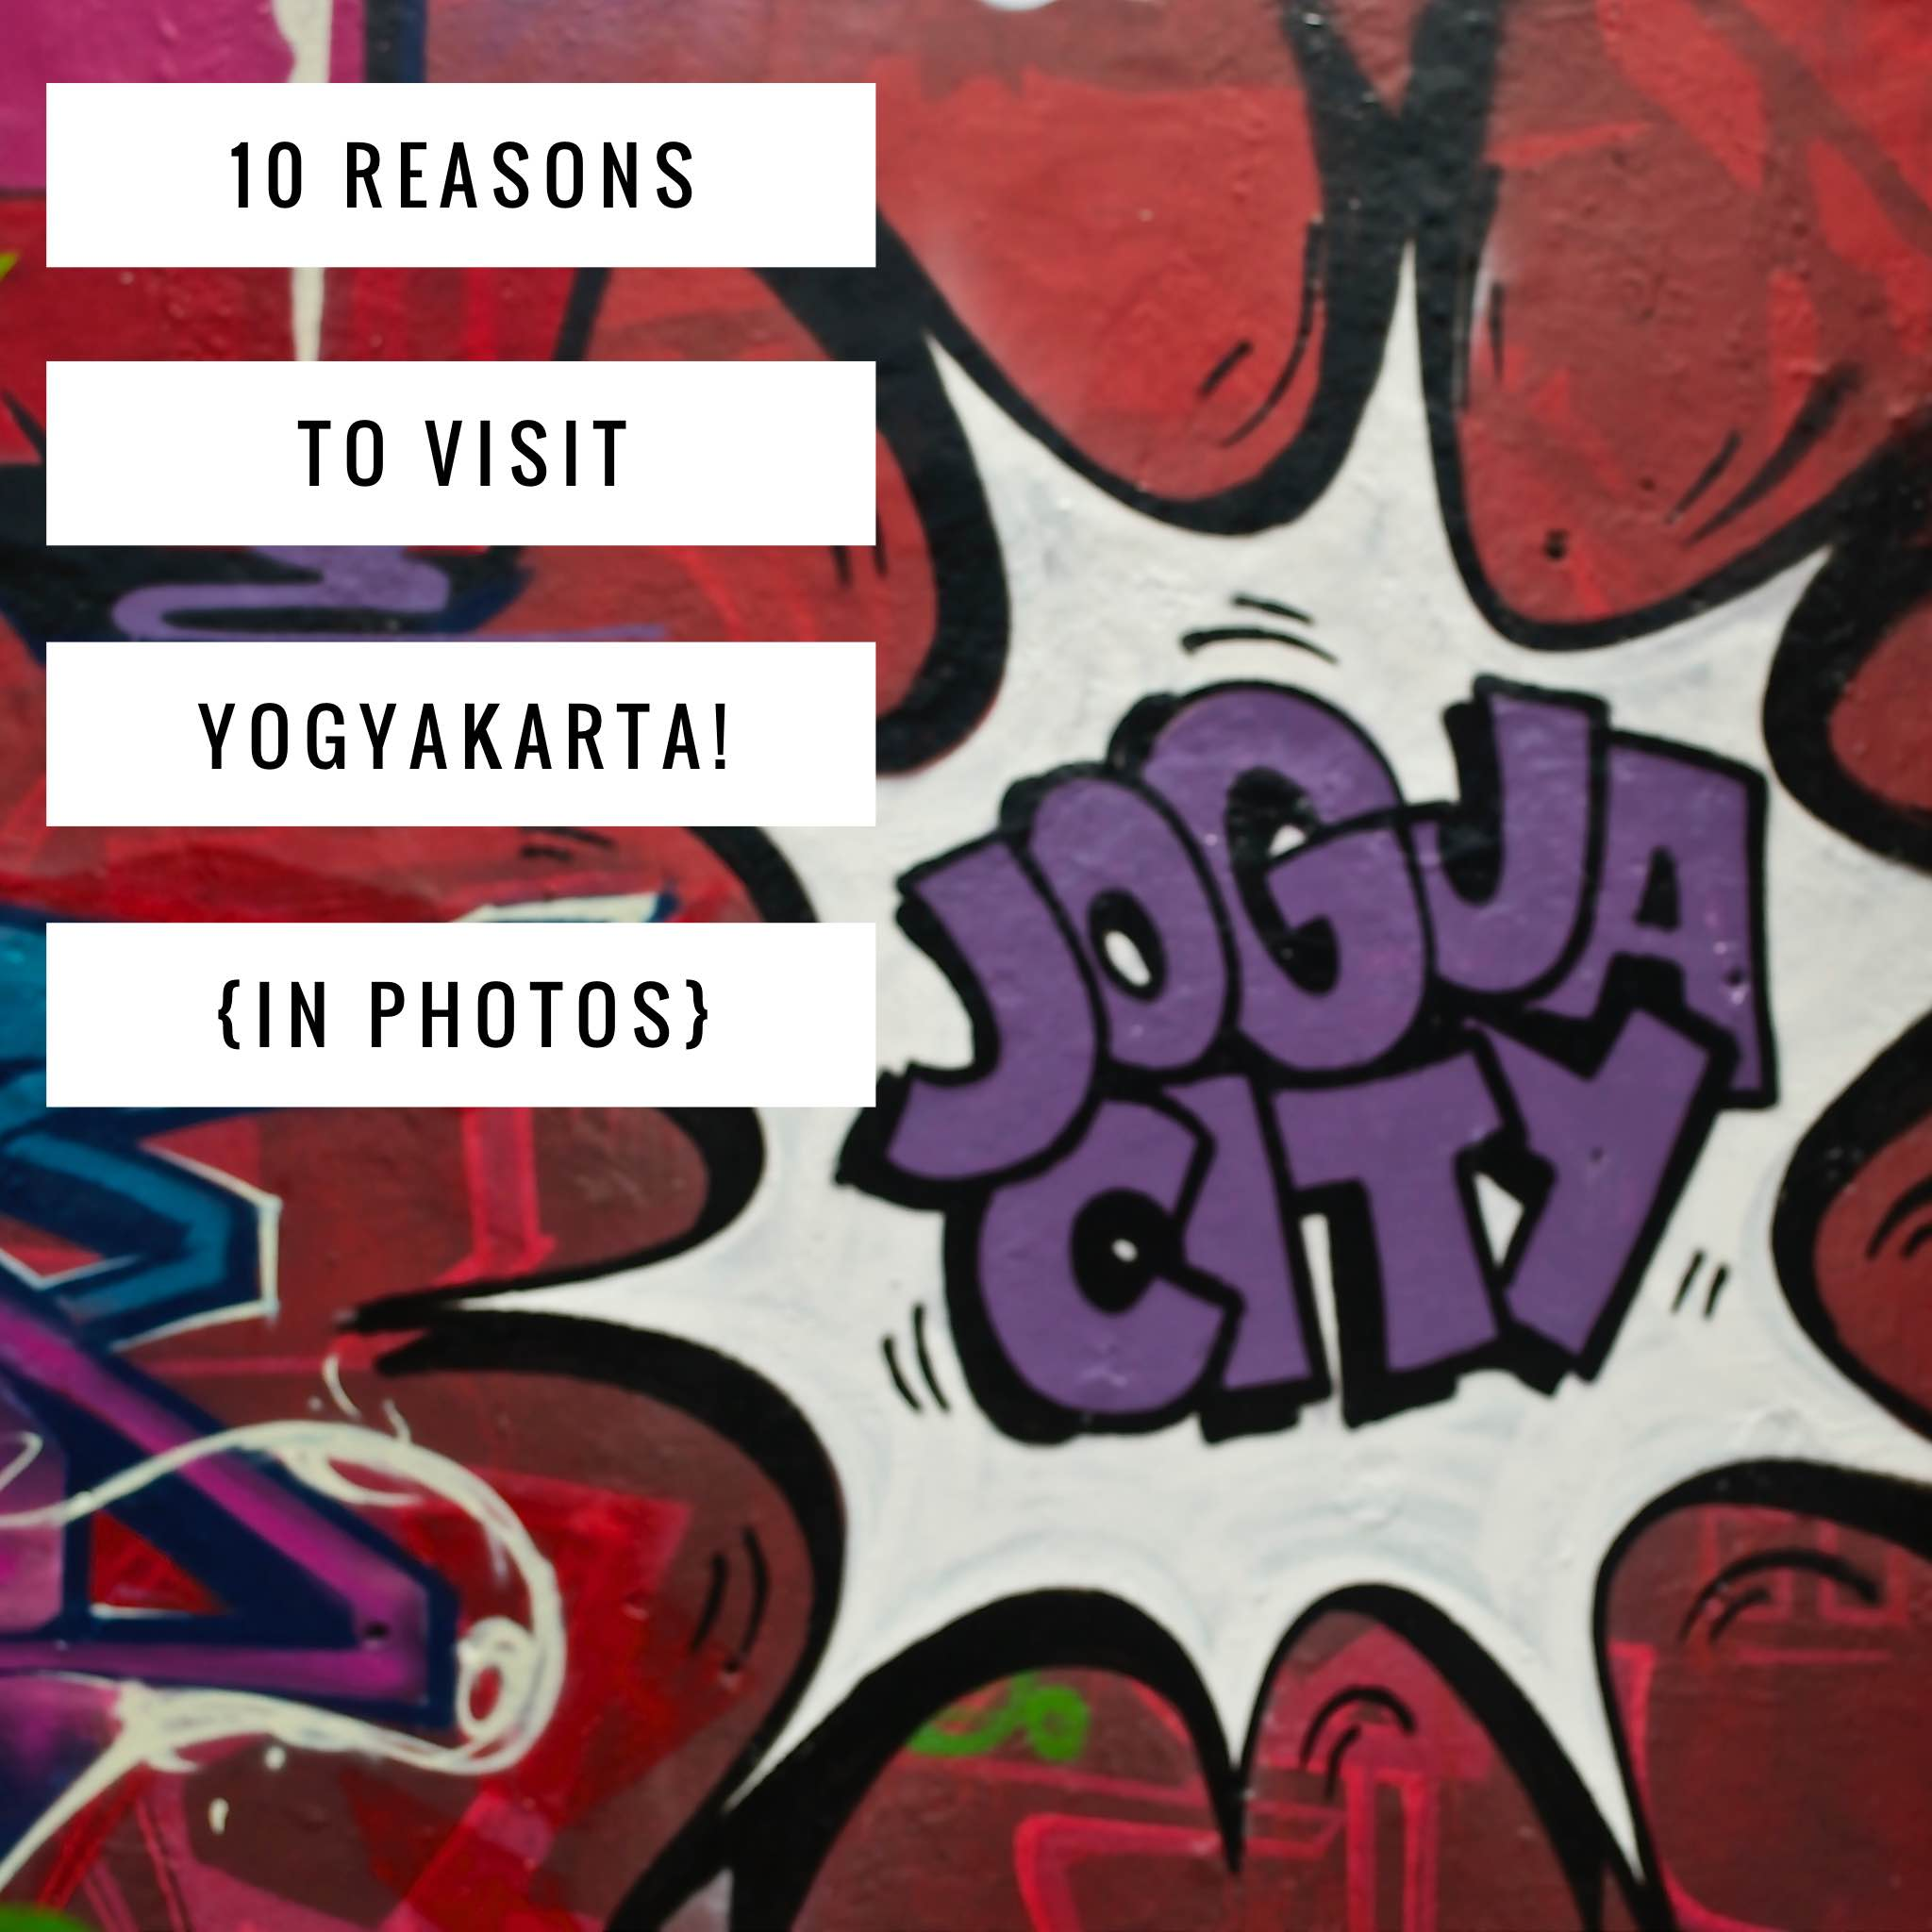 10 reasons to visit yogya Title pic